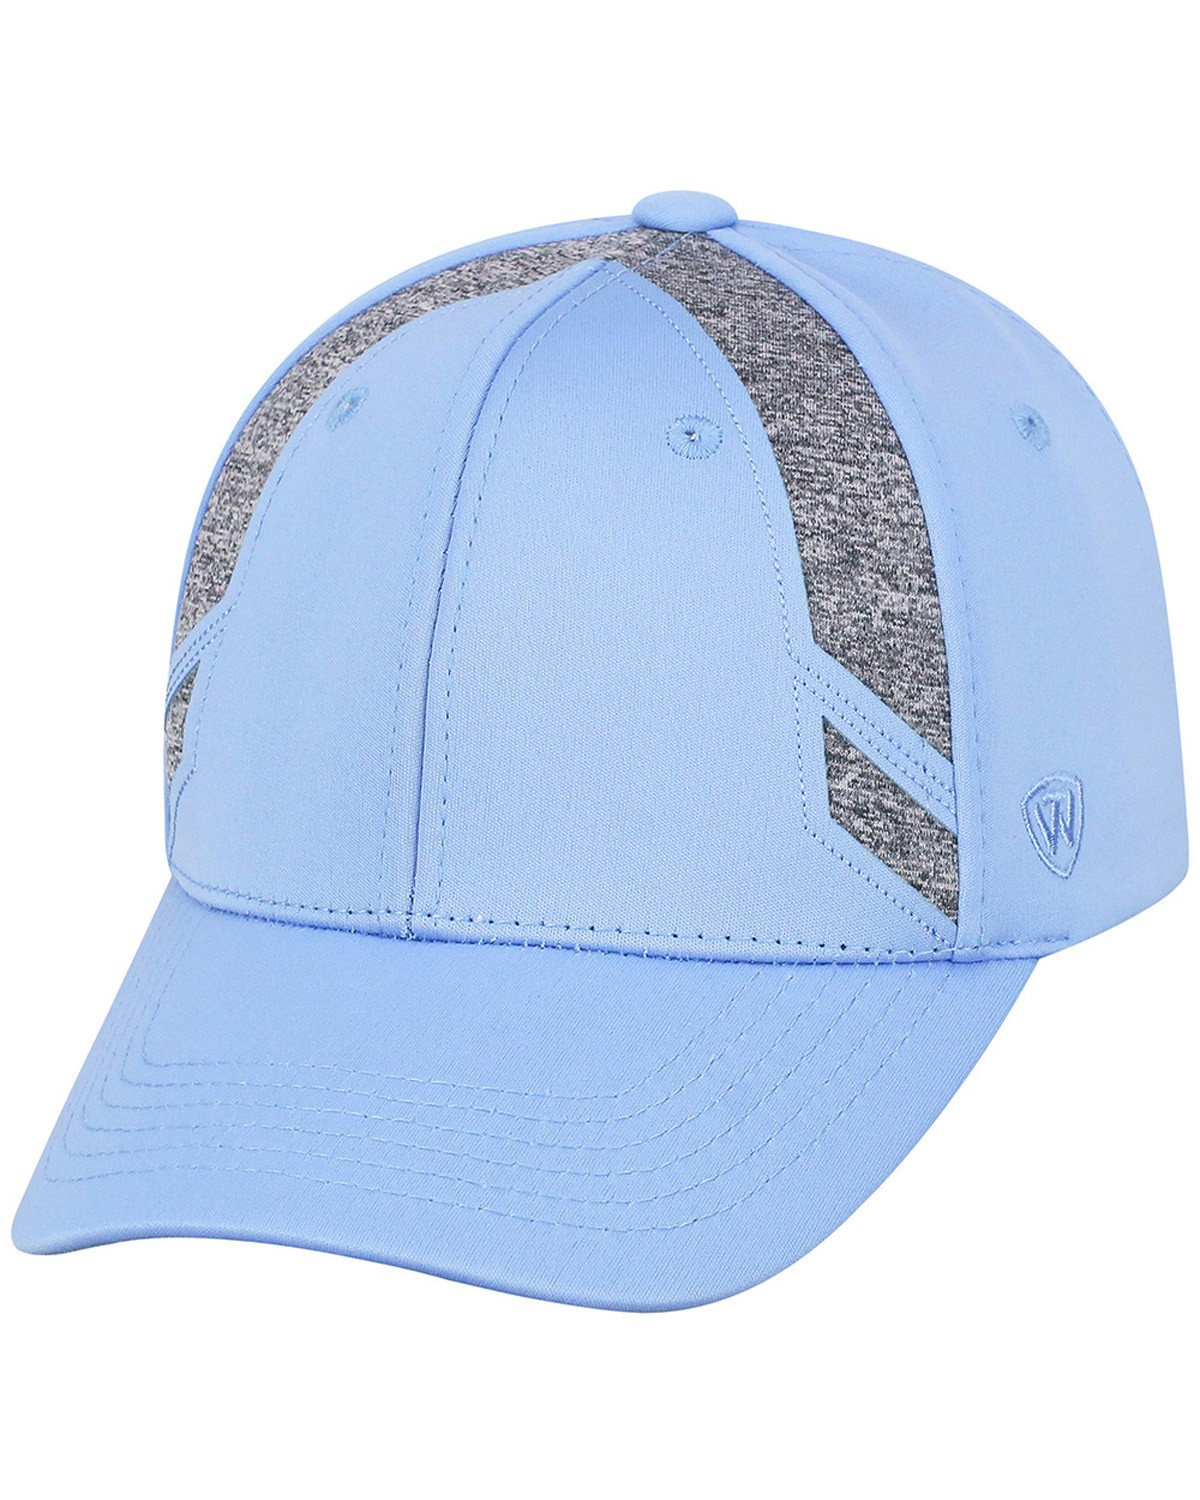 TW5519 Top Of The World LIGHT BLUE